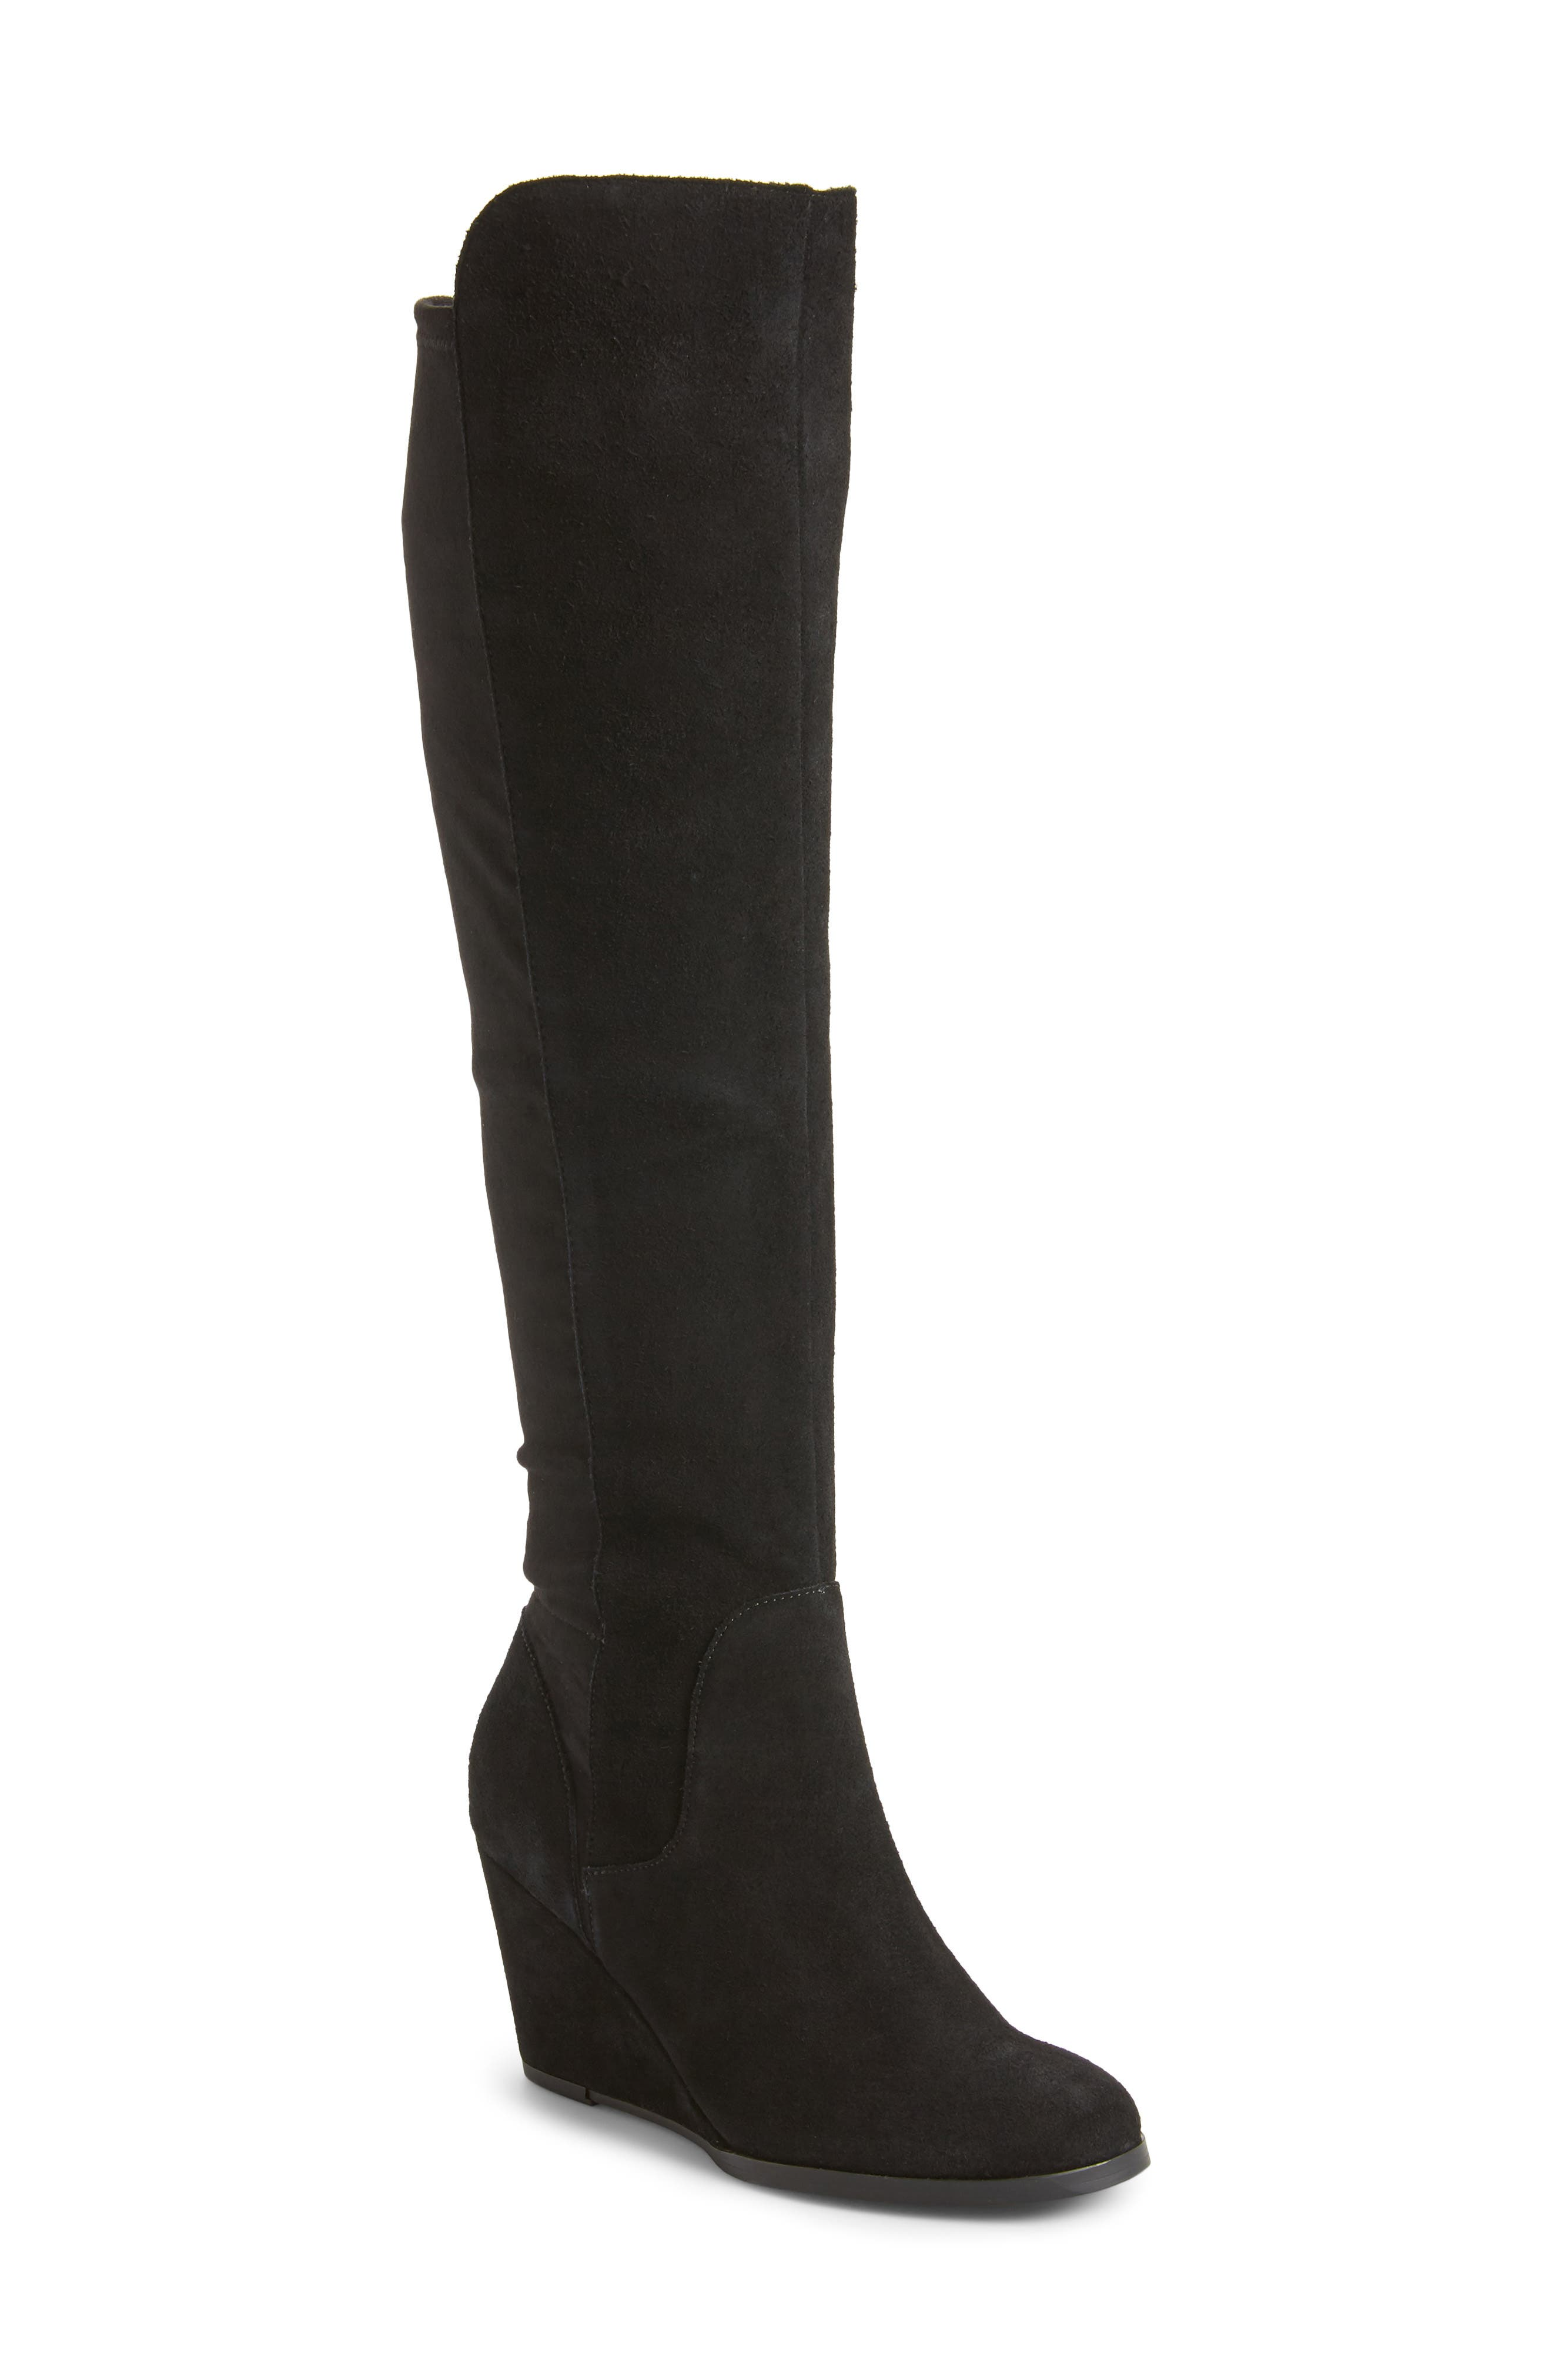 SOLE SOCIETY Laila Boot, Main, color, 001